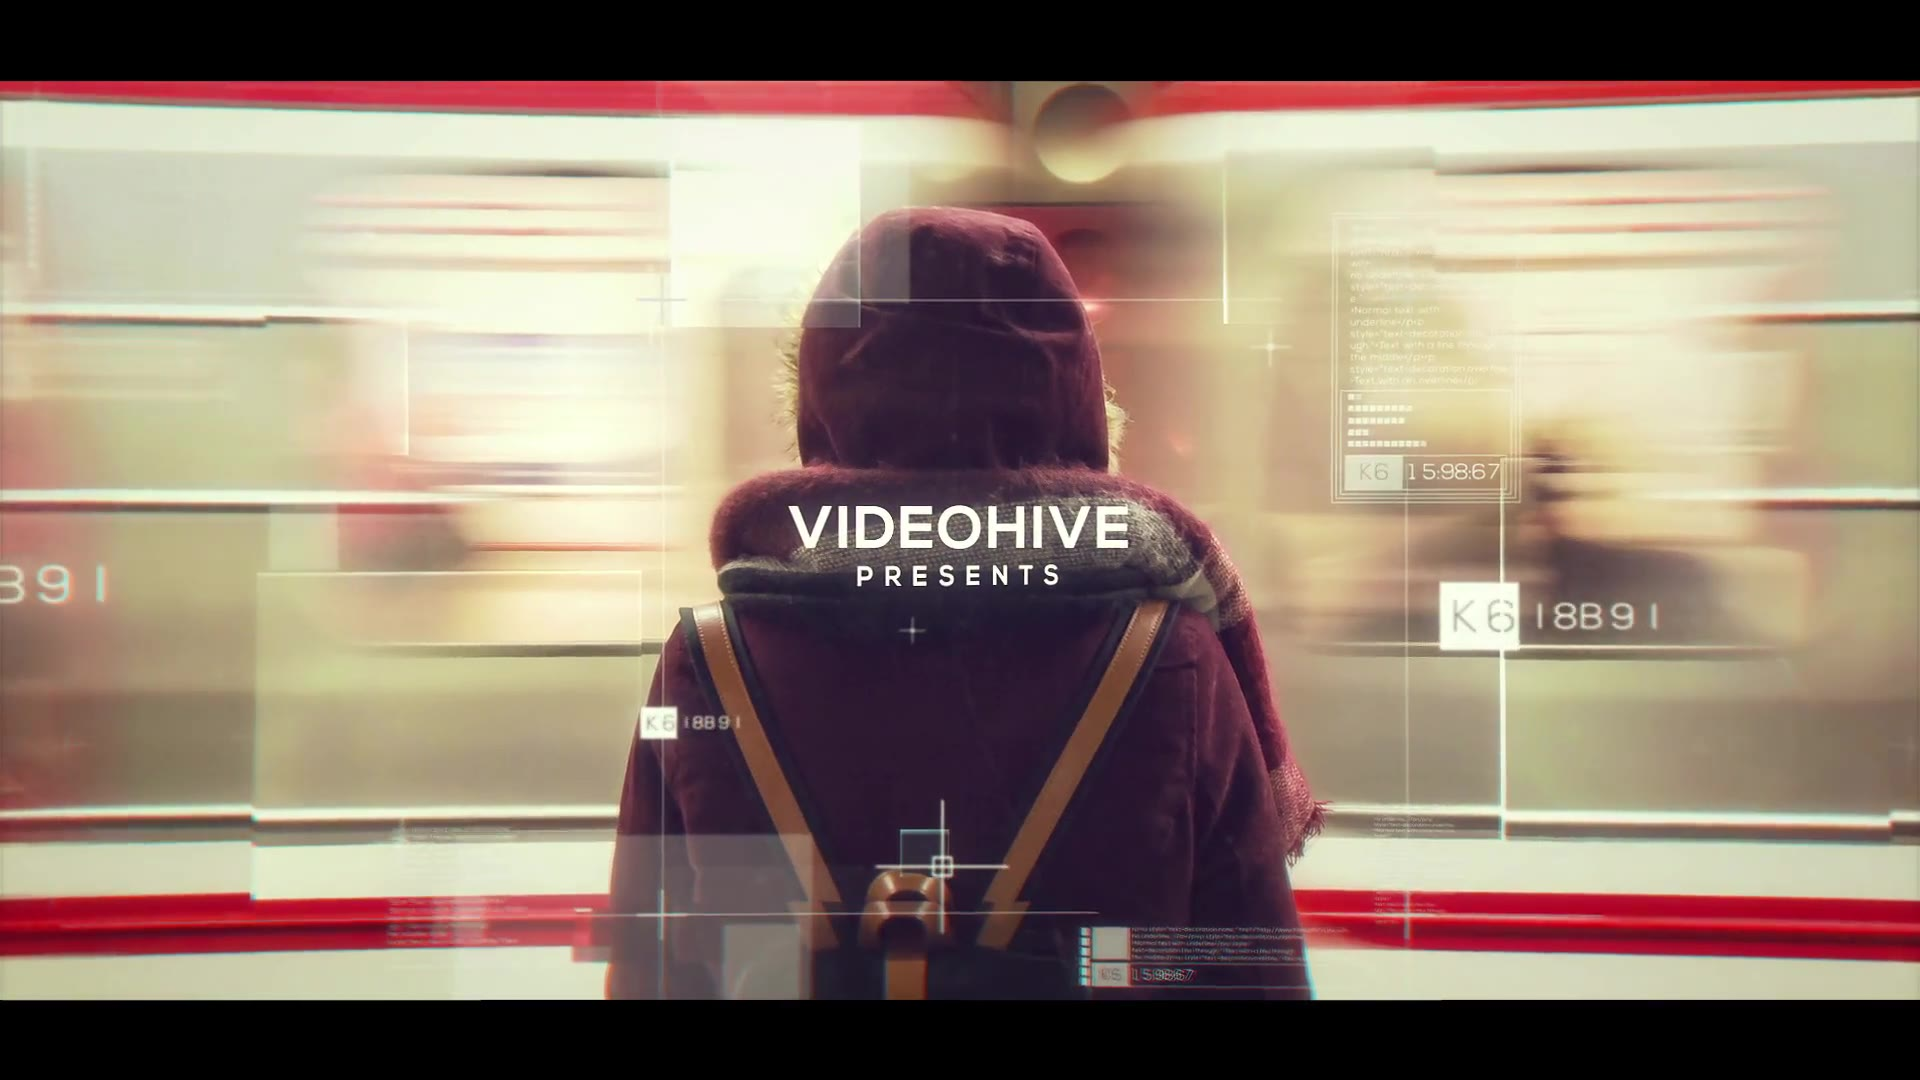 Futuristic Slideshow - Download Videohive 19758916